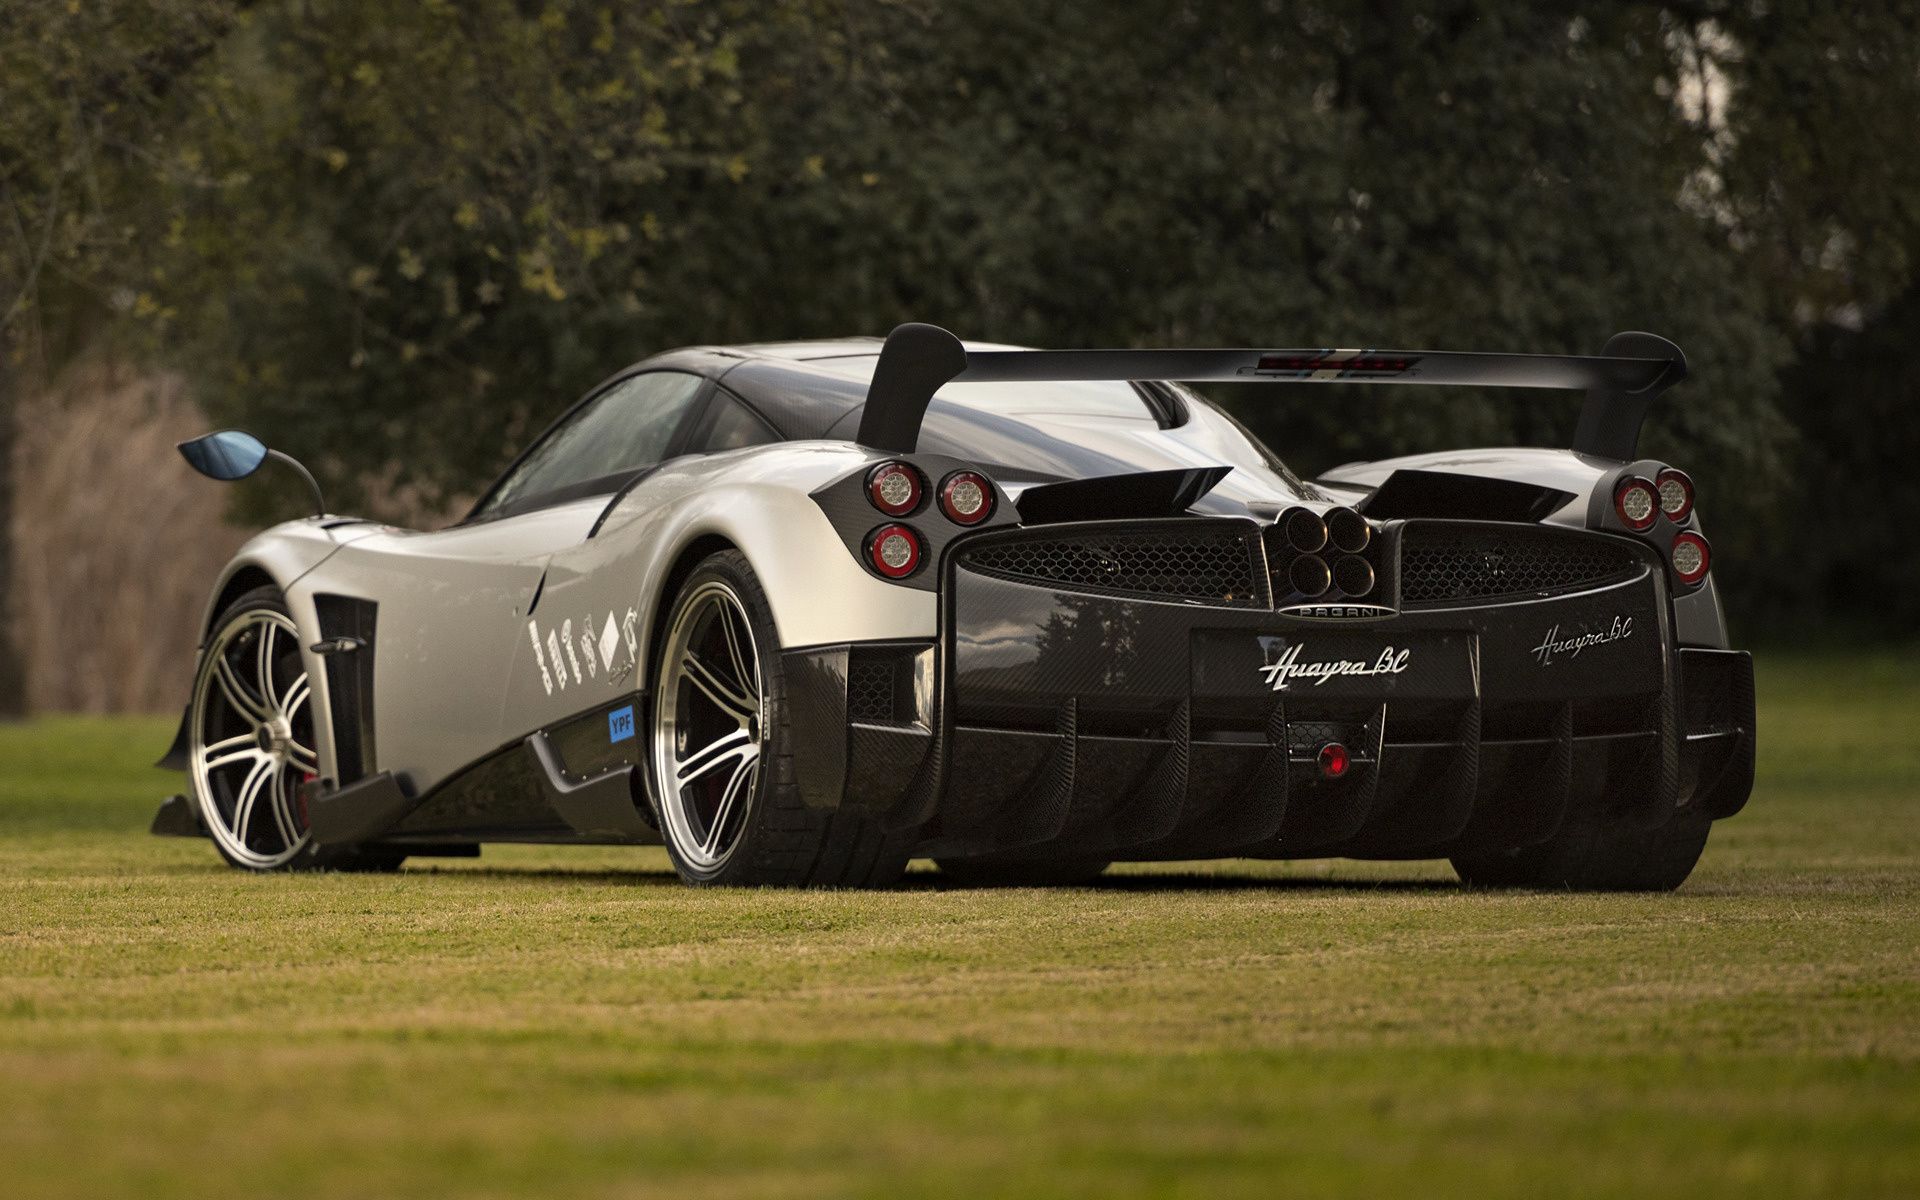 2016 Pagani Huayra Bc Wallpapers And Hd Images Car Pixel